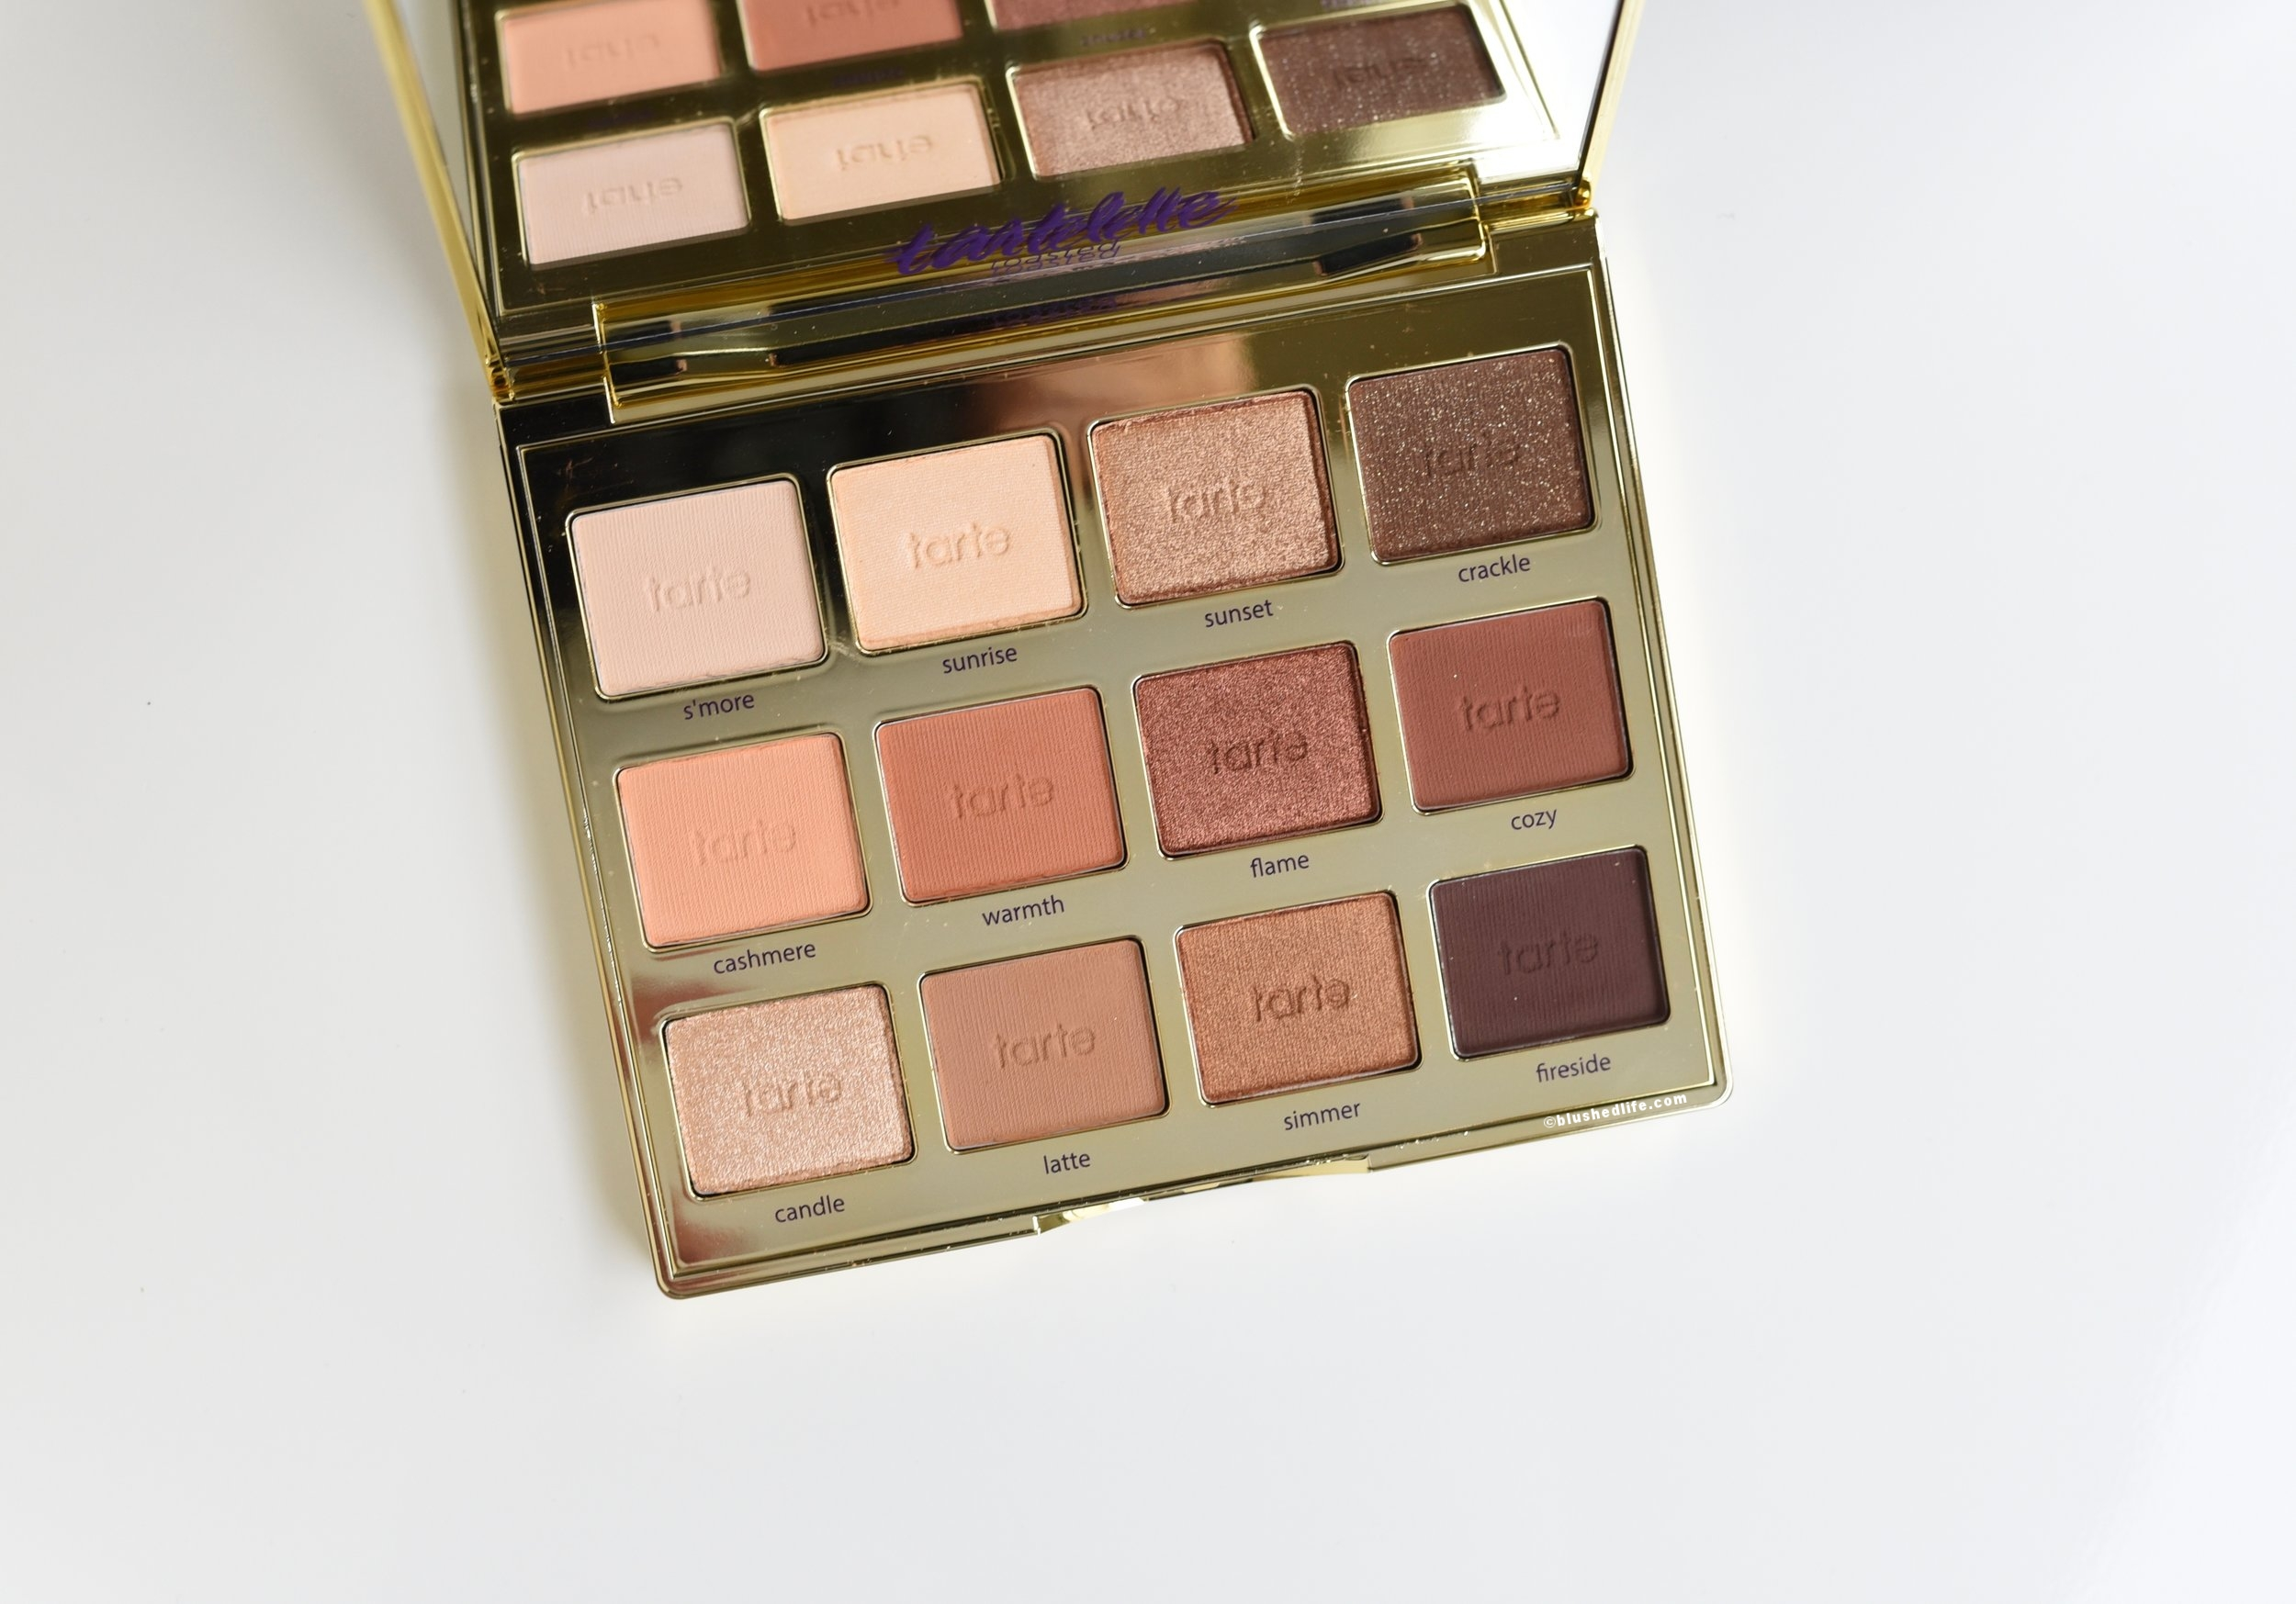 Tartelette Toasted Review & Makeup Look_DSC_0282.jpg